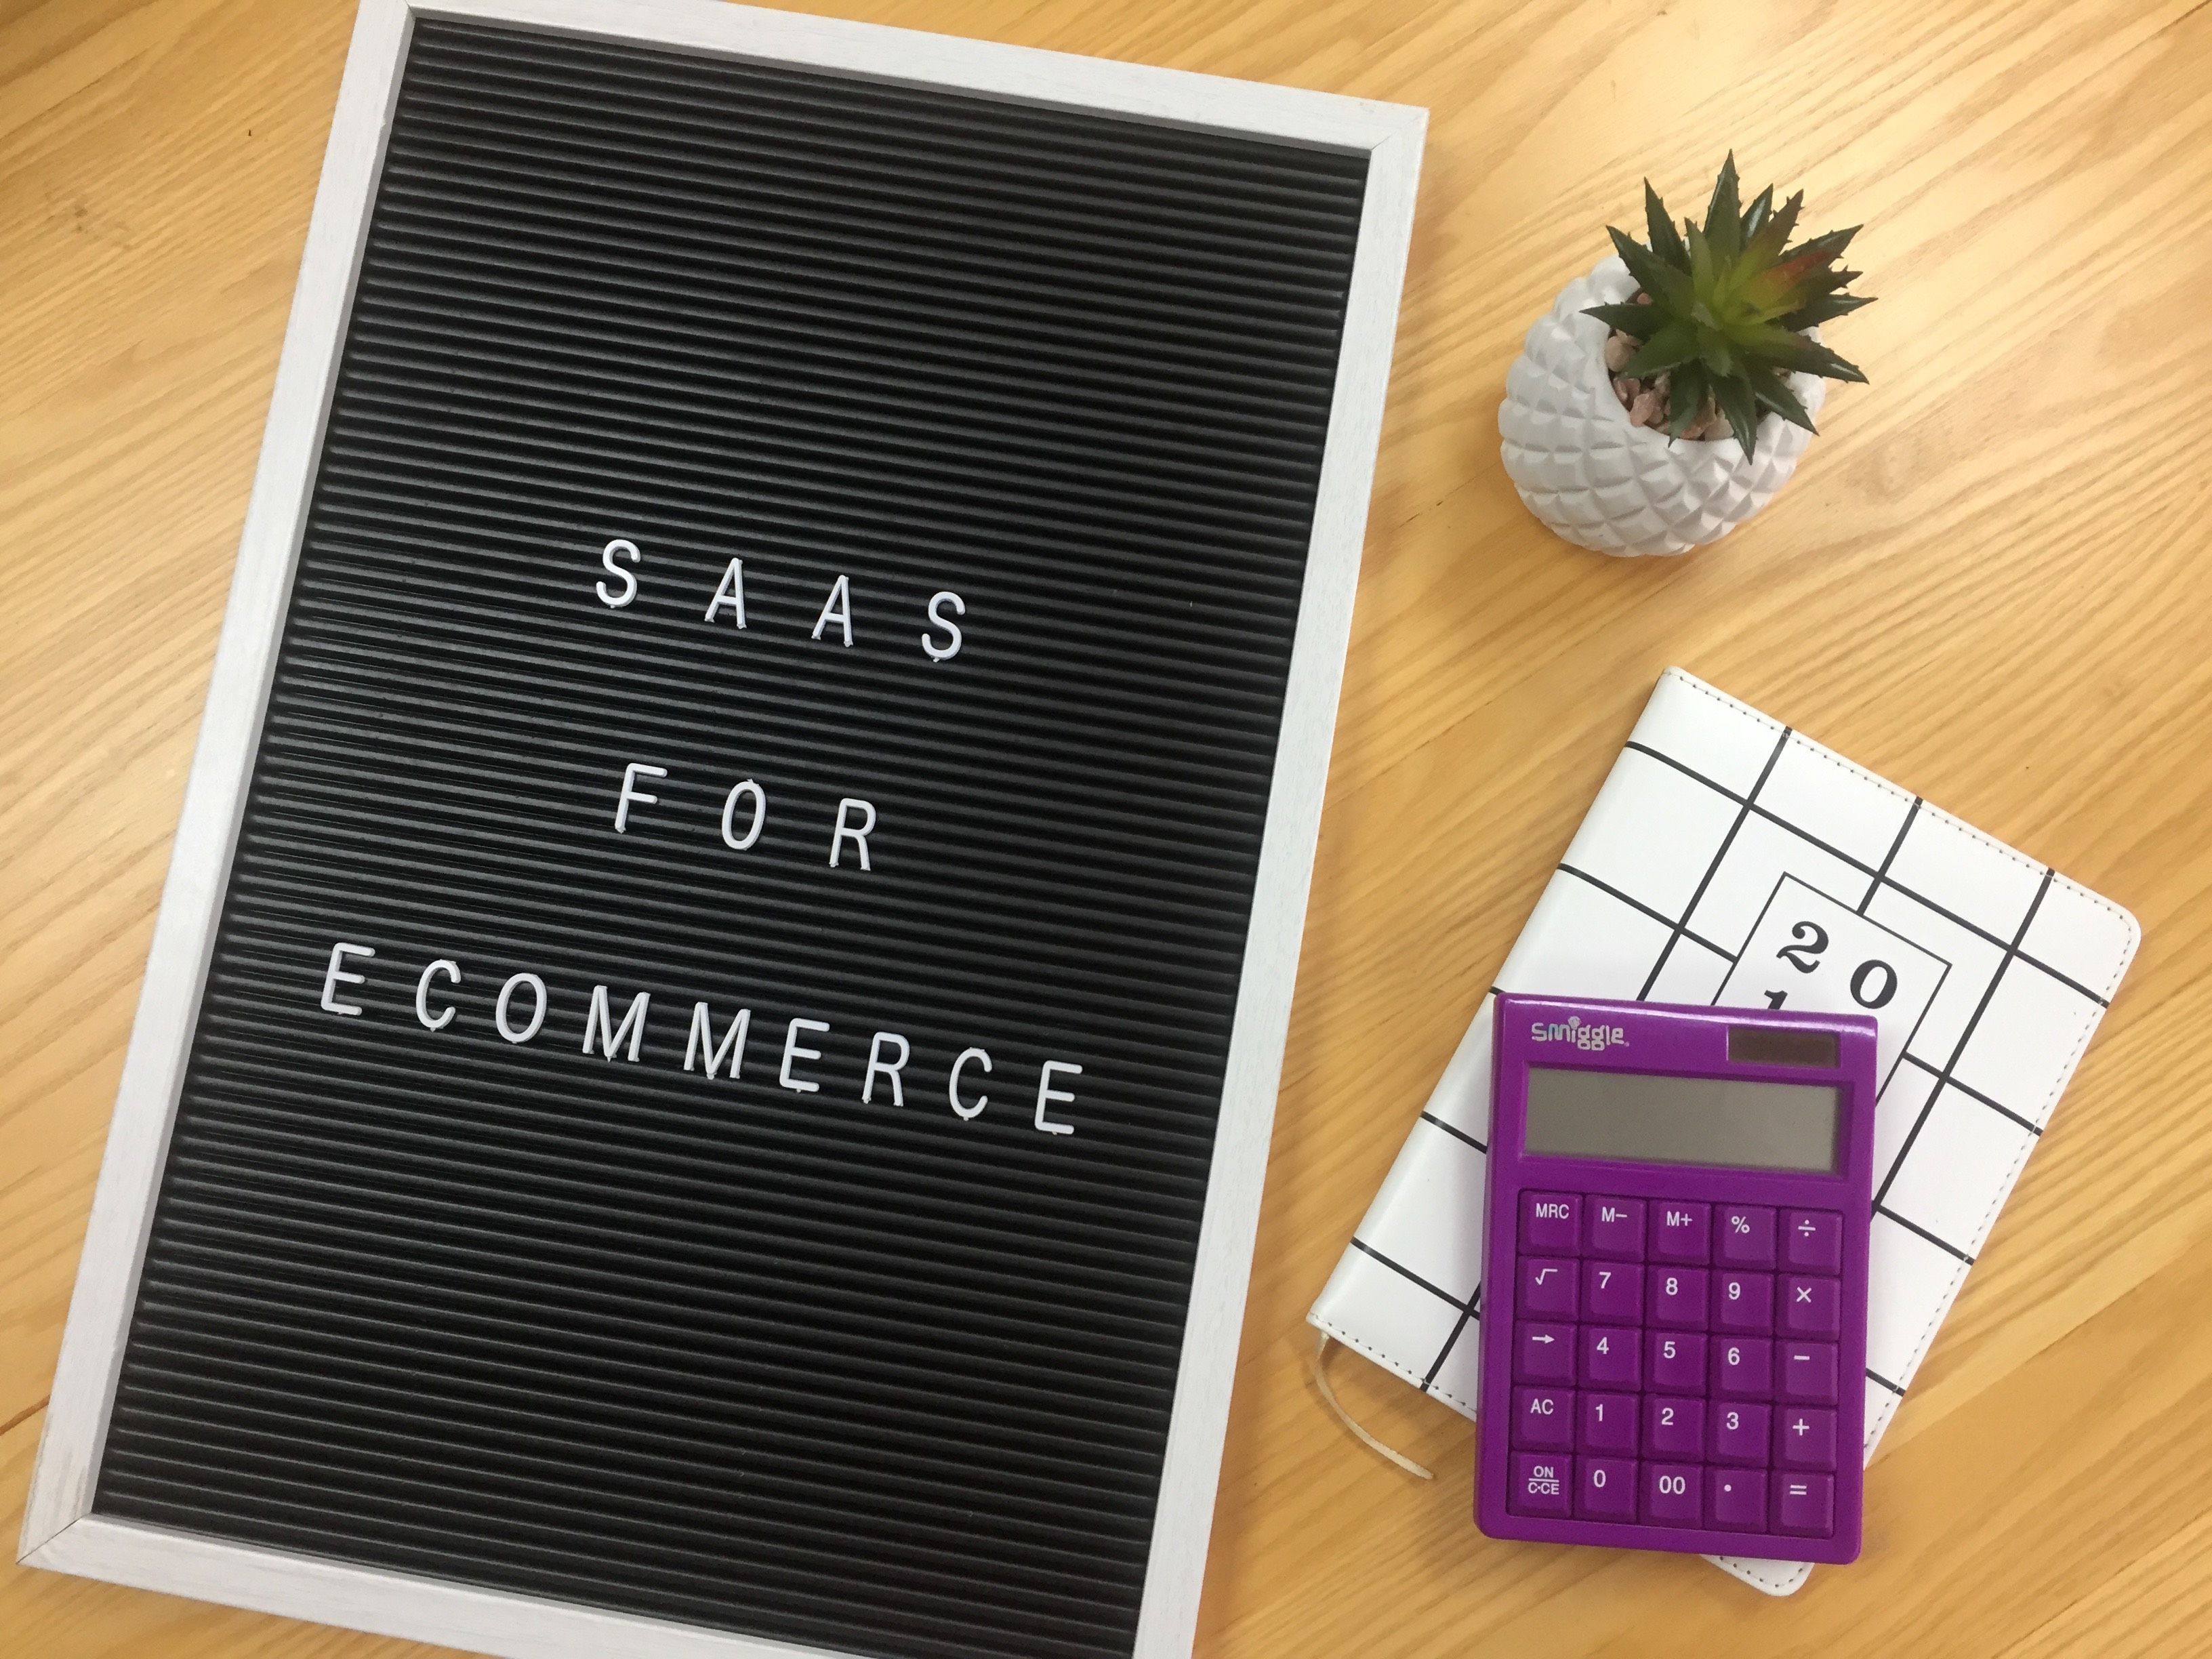 Software as a Service (SaaS) for eCommerce